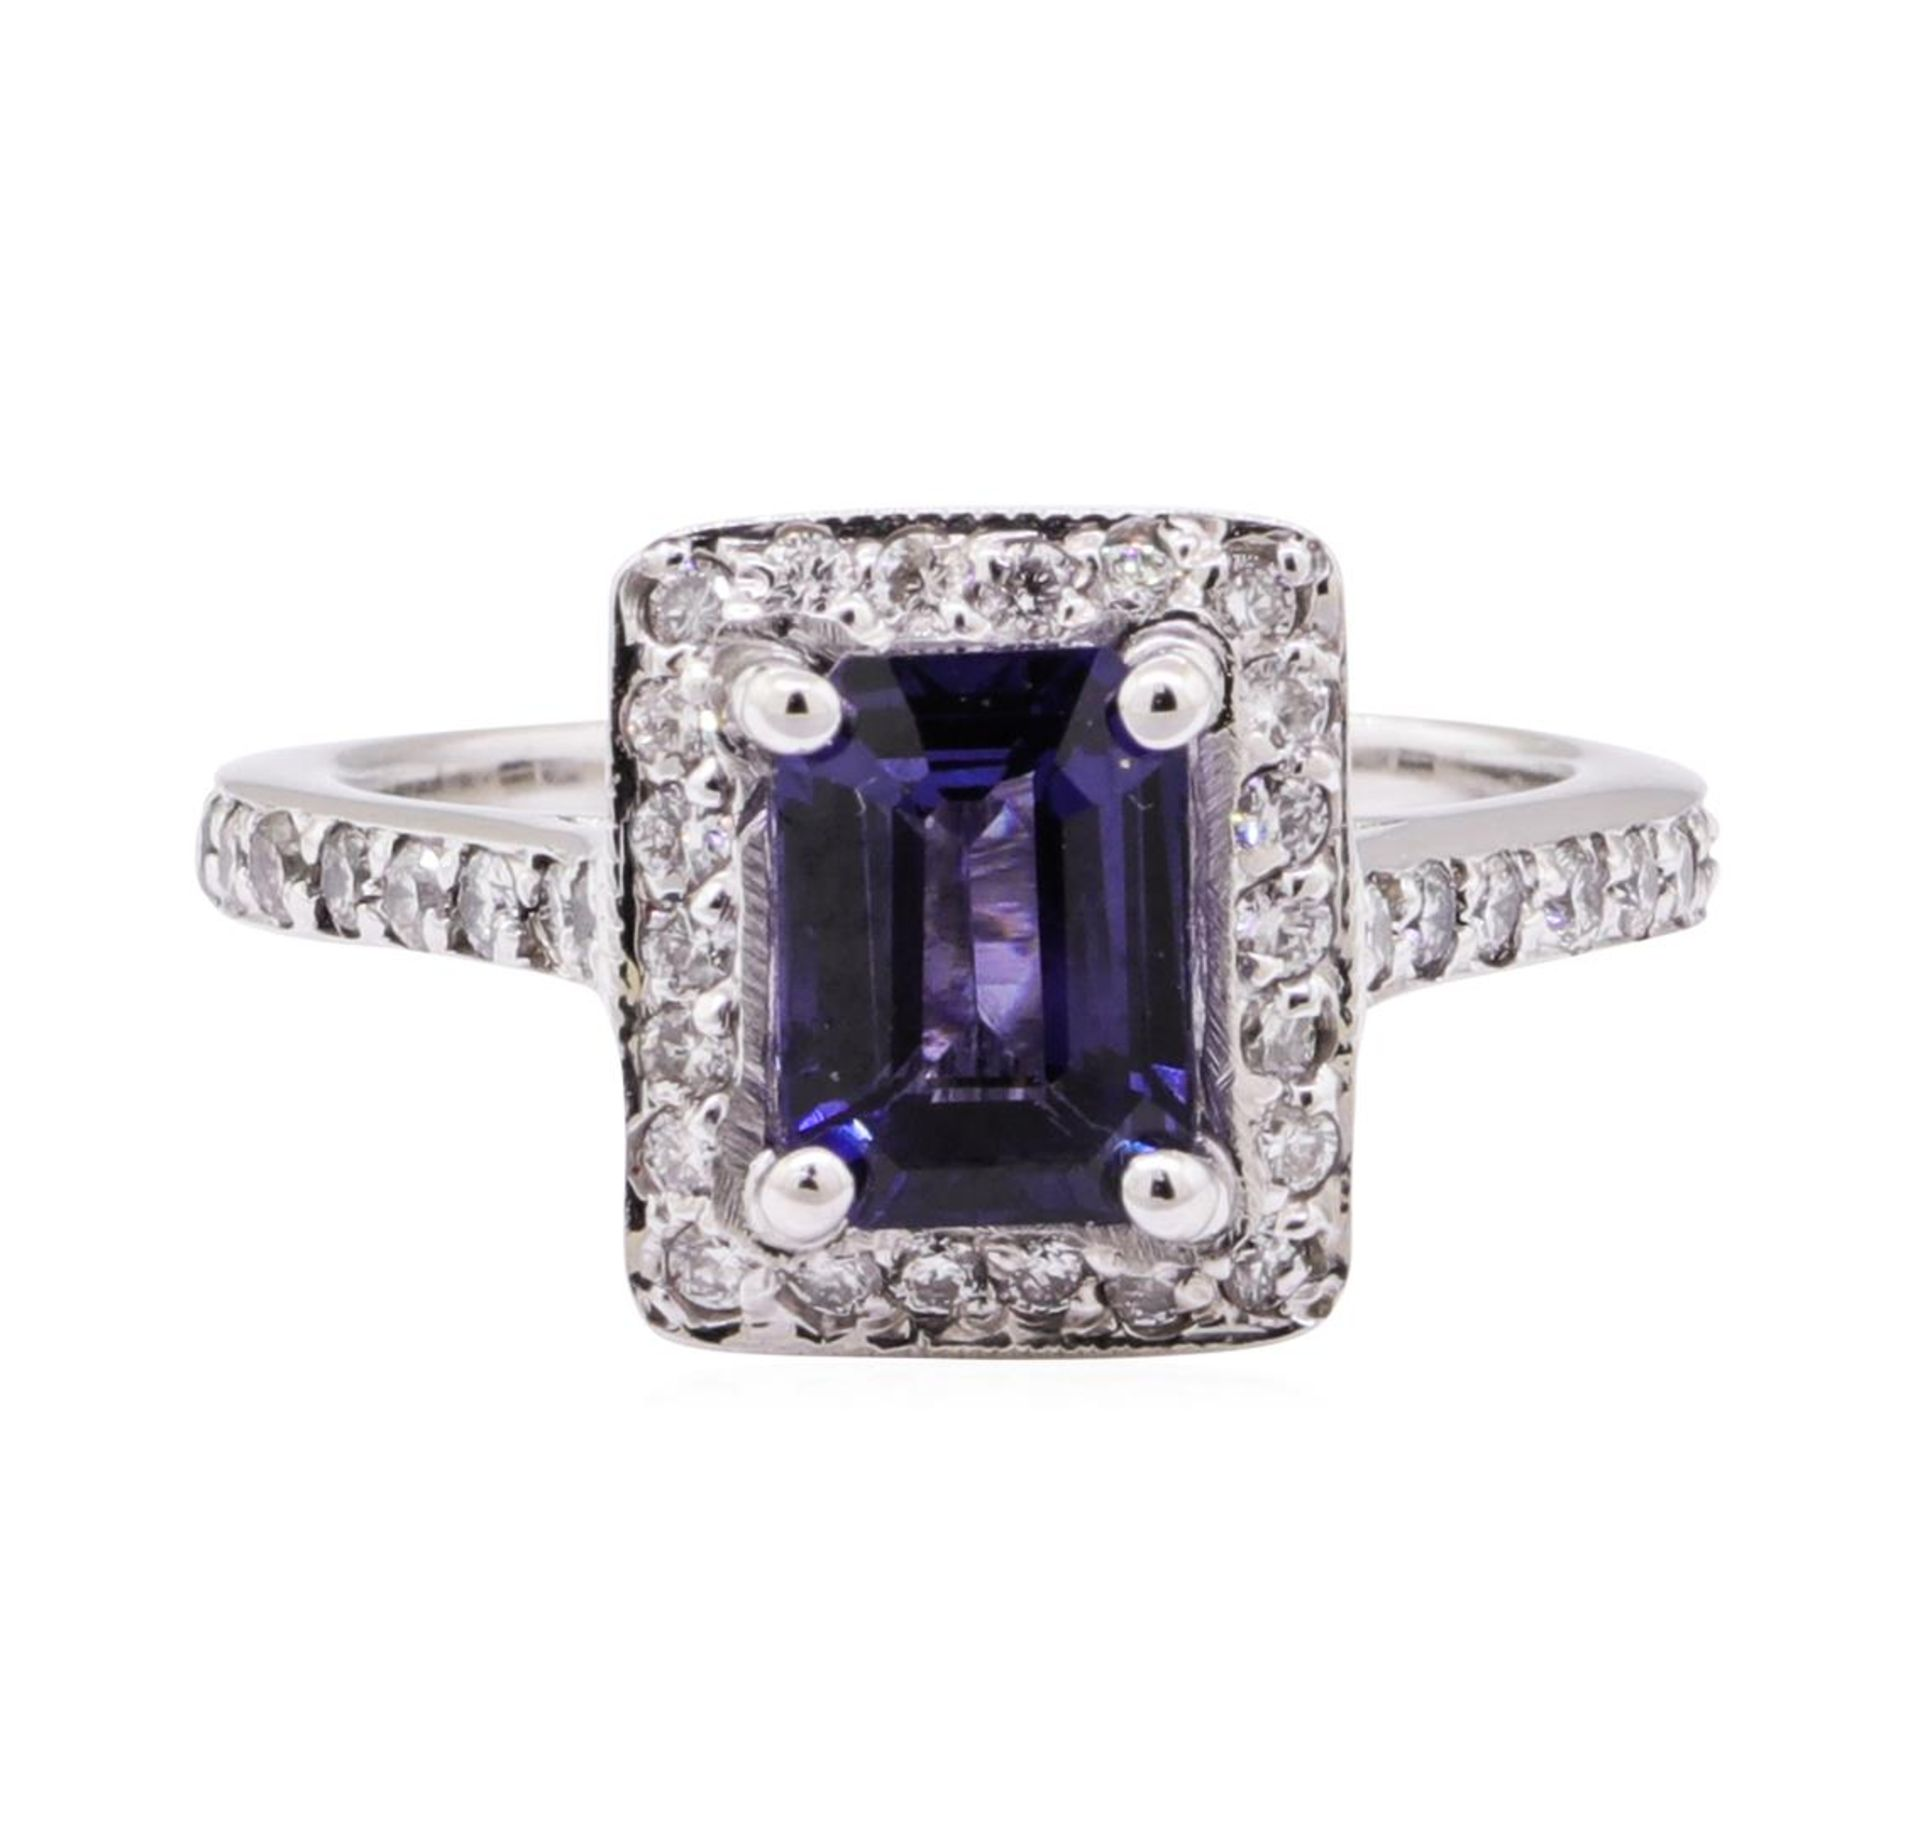 2.21 ctw Blue Sapphire And Diamond Ring - 14KT White Gold - Image 2 of 5